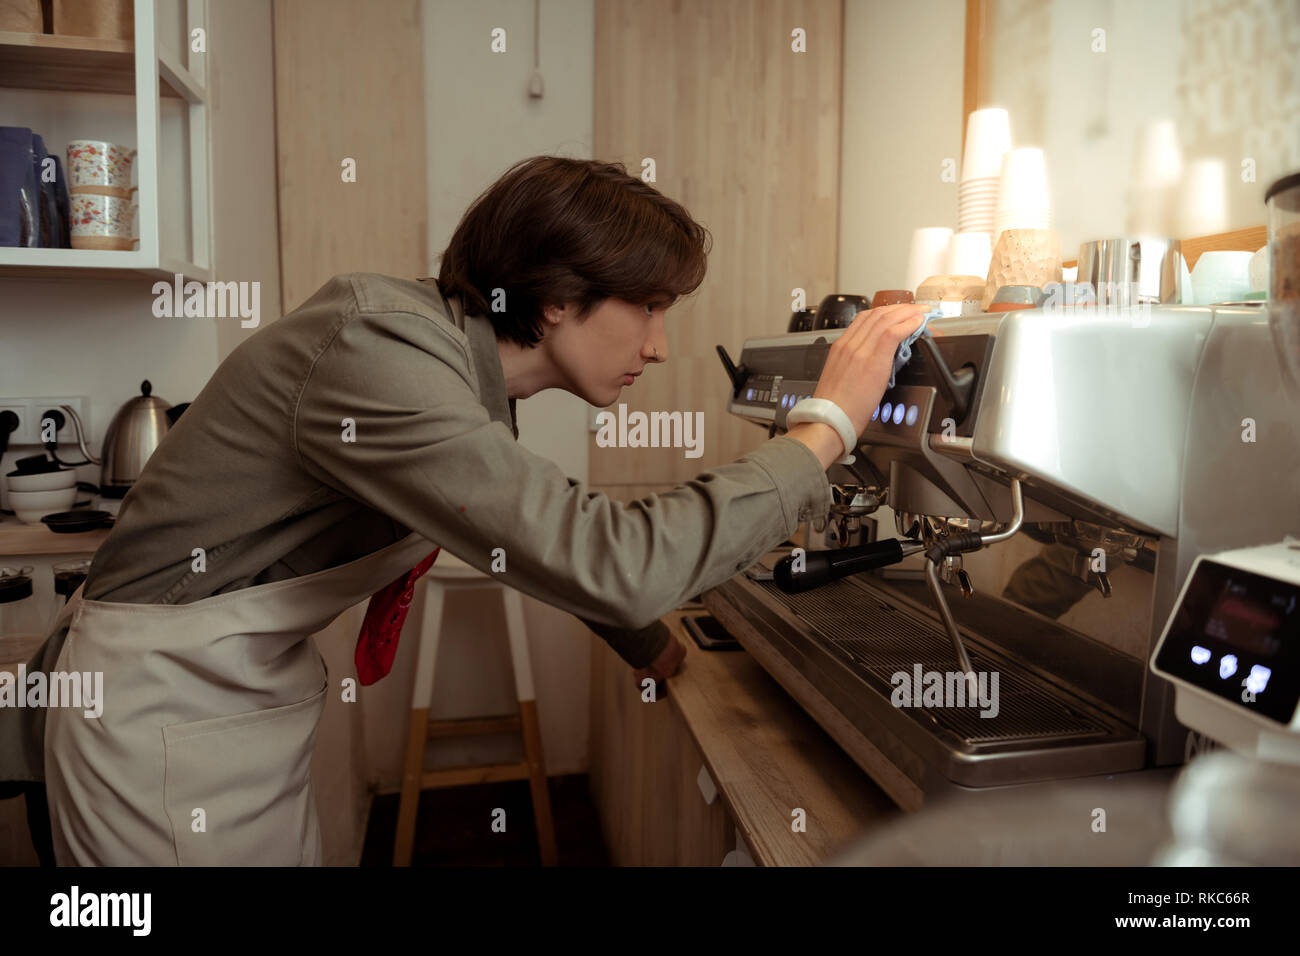 Dark-haired barista with nose piercing cleaning coffee equipment - Stock Image